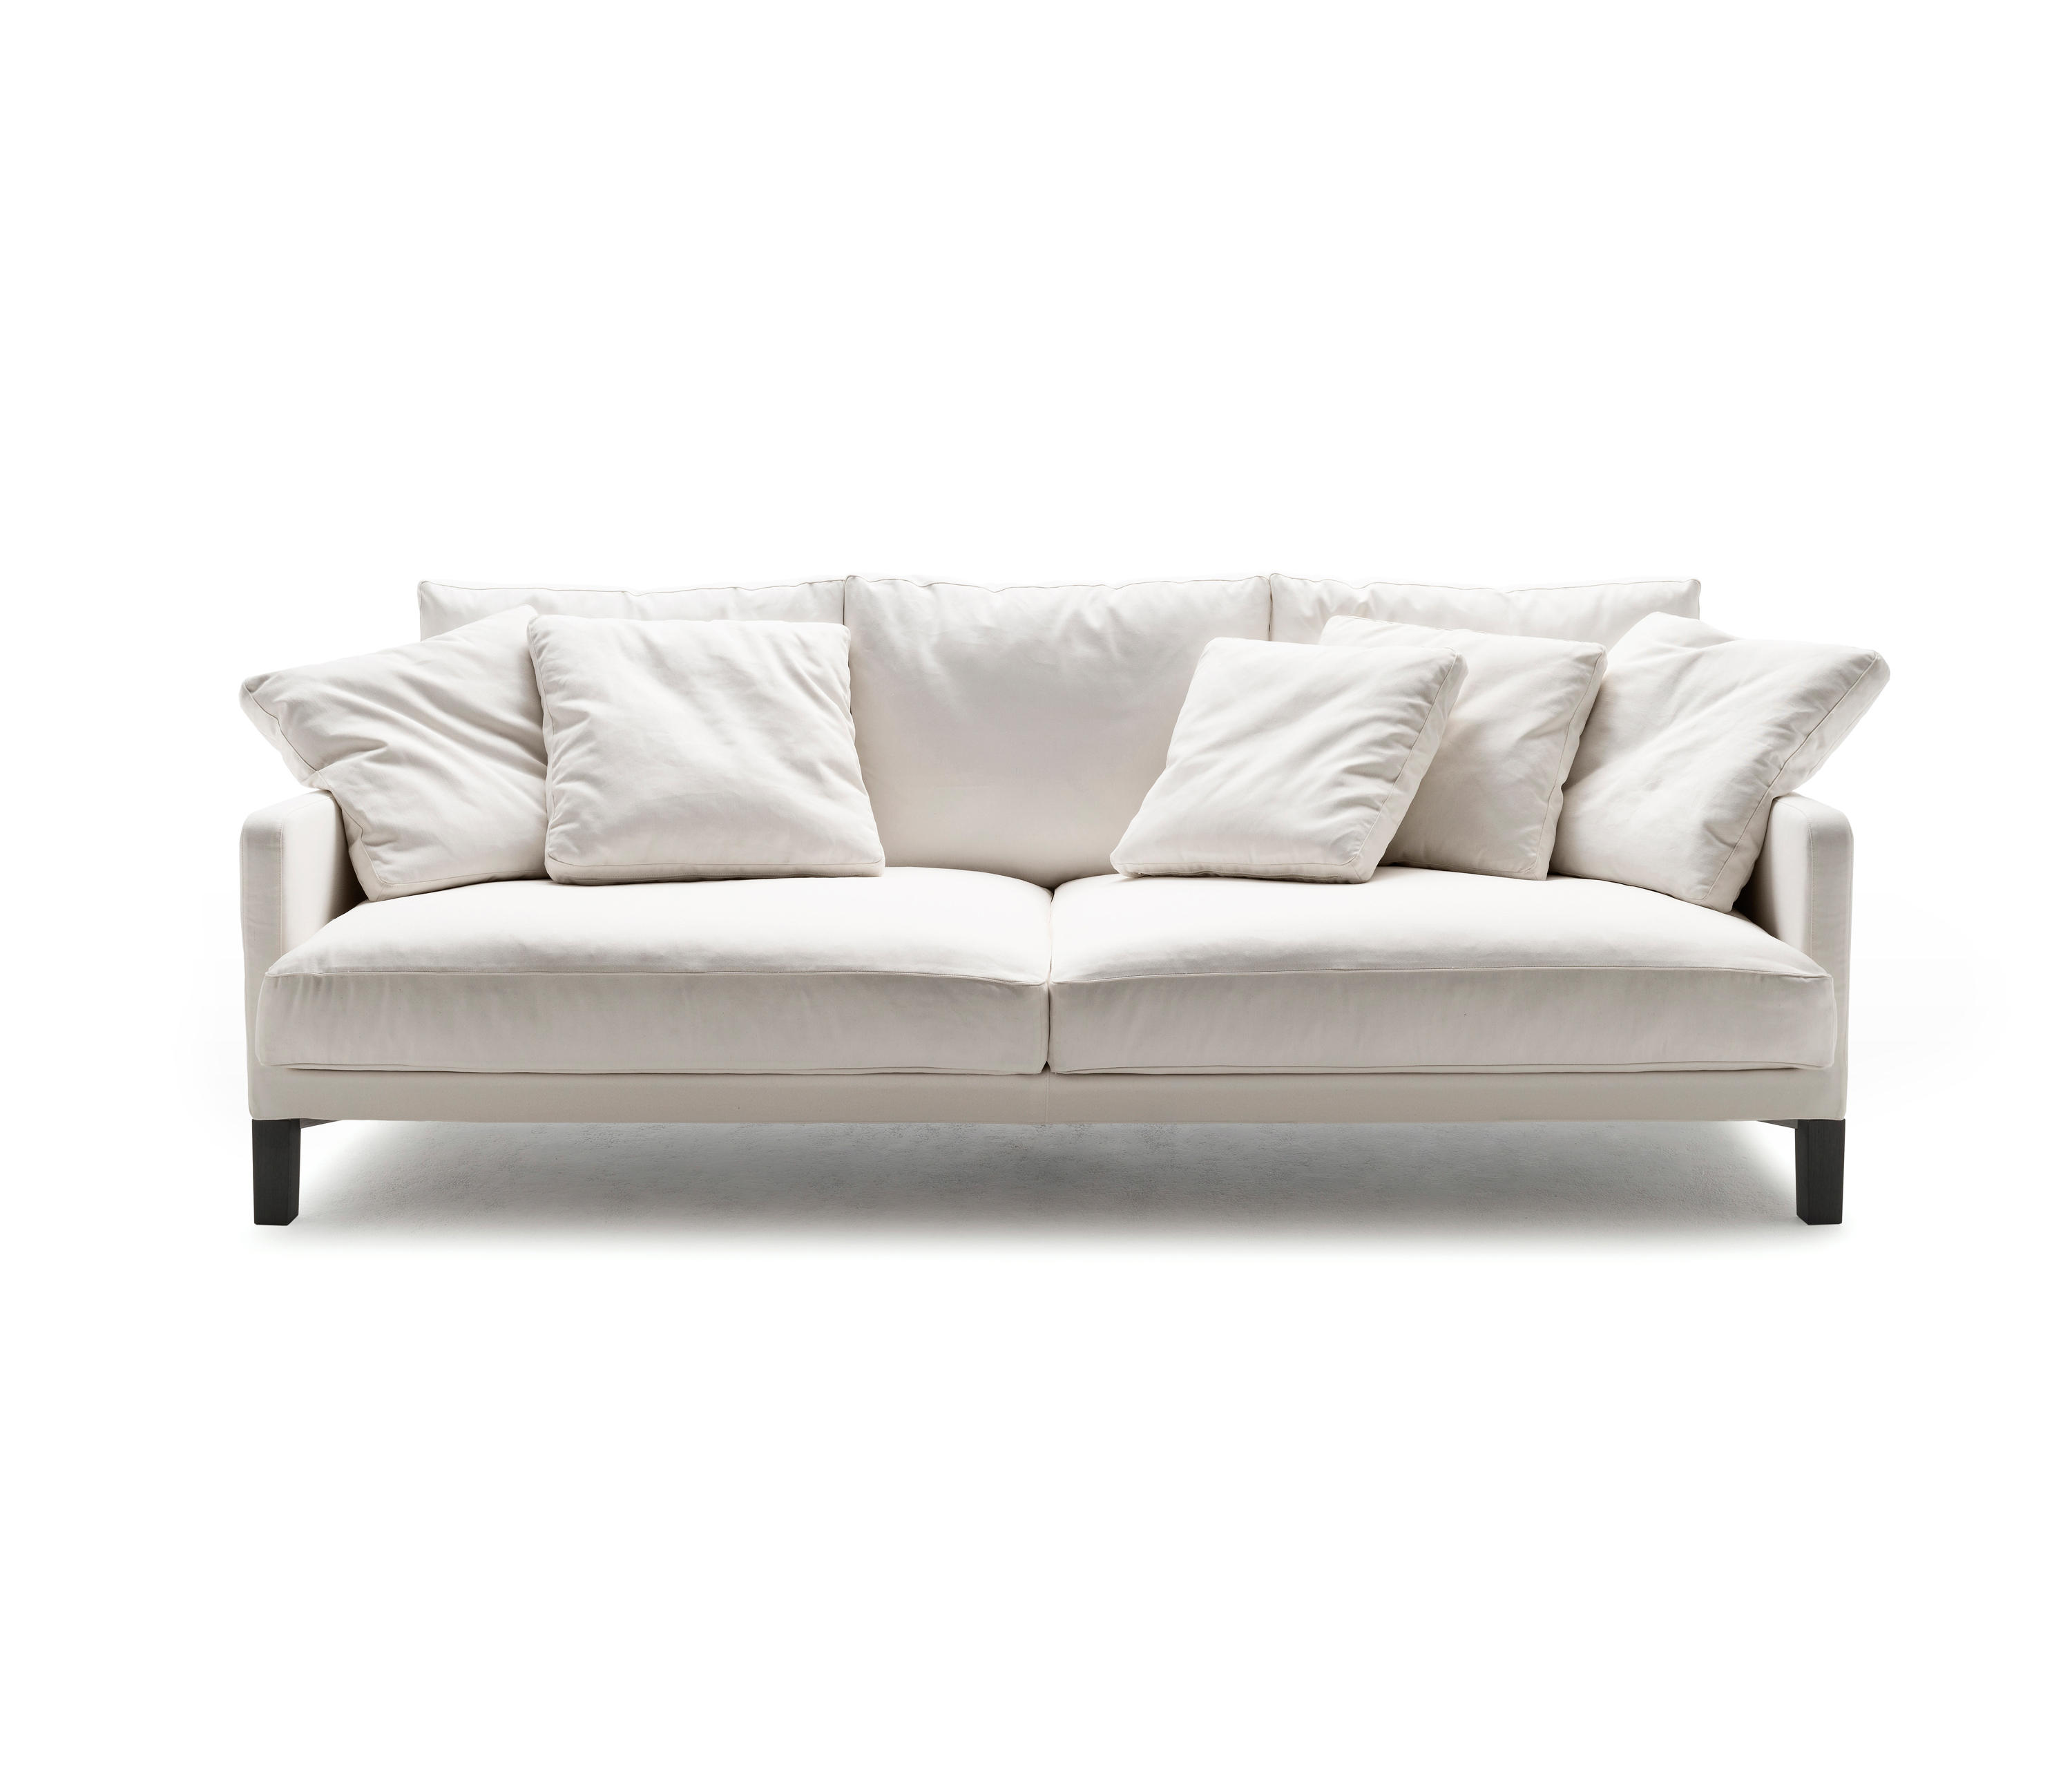 Living Divani Sofa Price Dumas Sofa Sofas From Living Divani Architonic